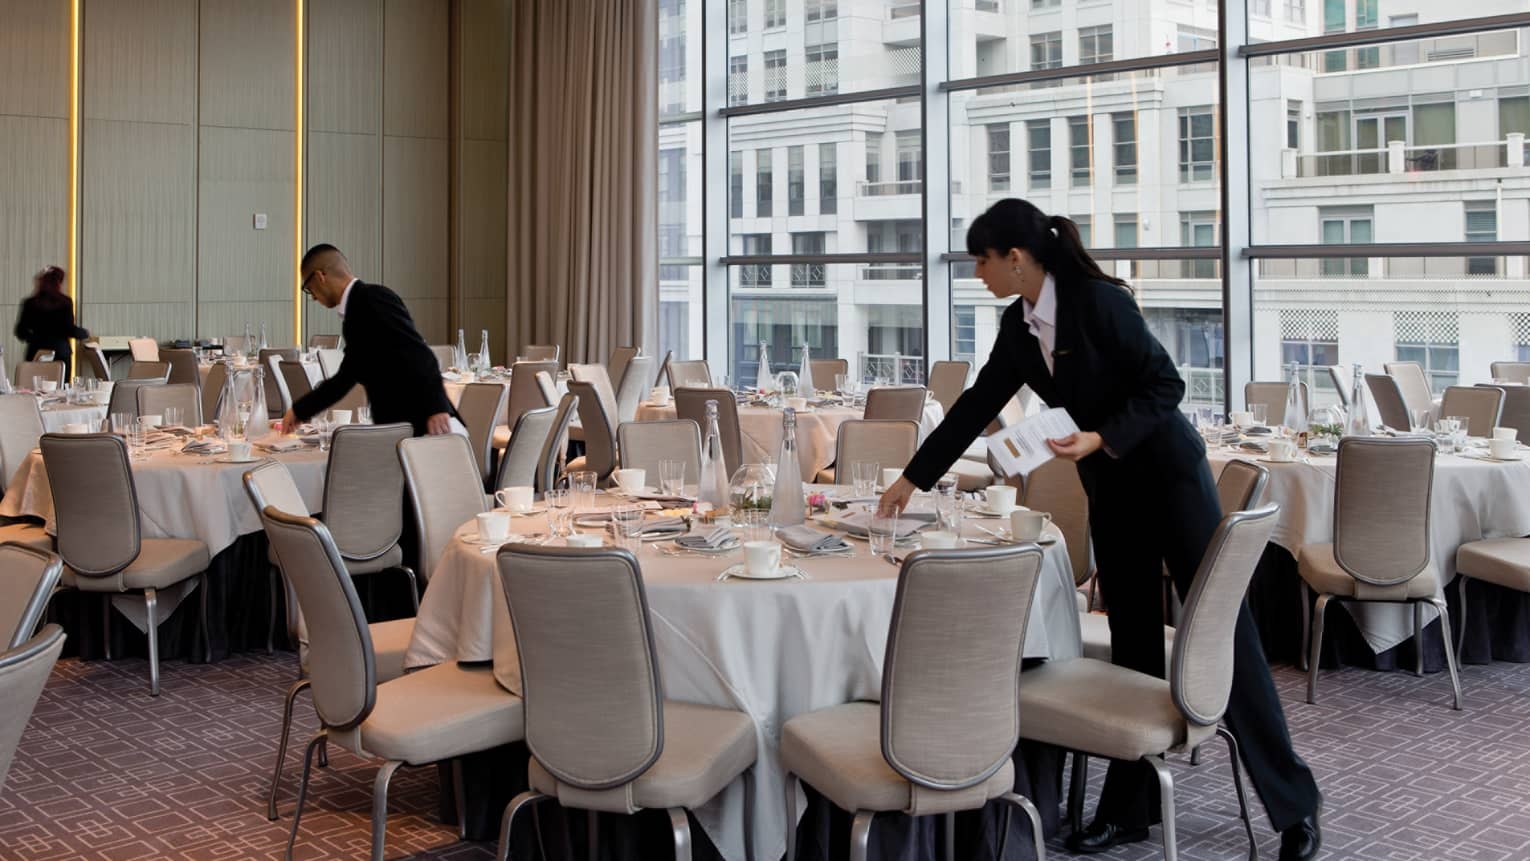 Hotel staff set round banquet tables in meeting room